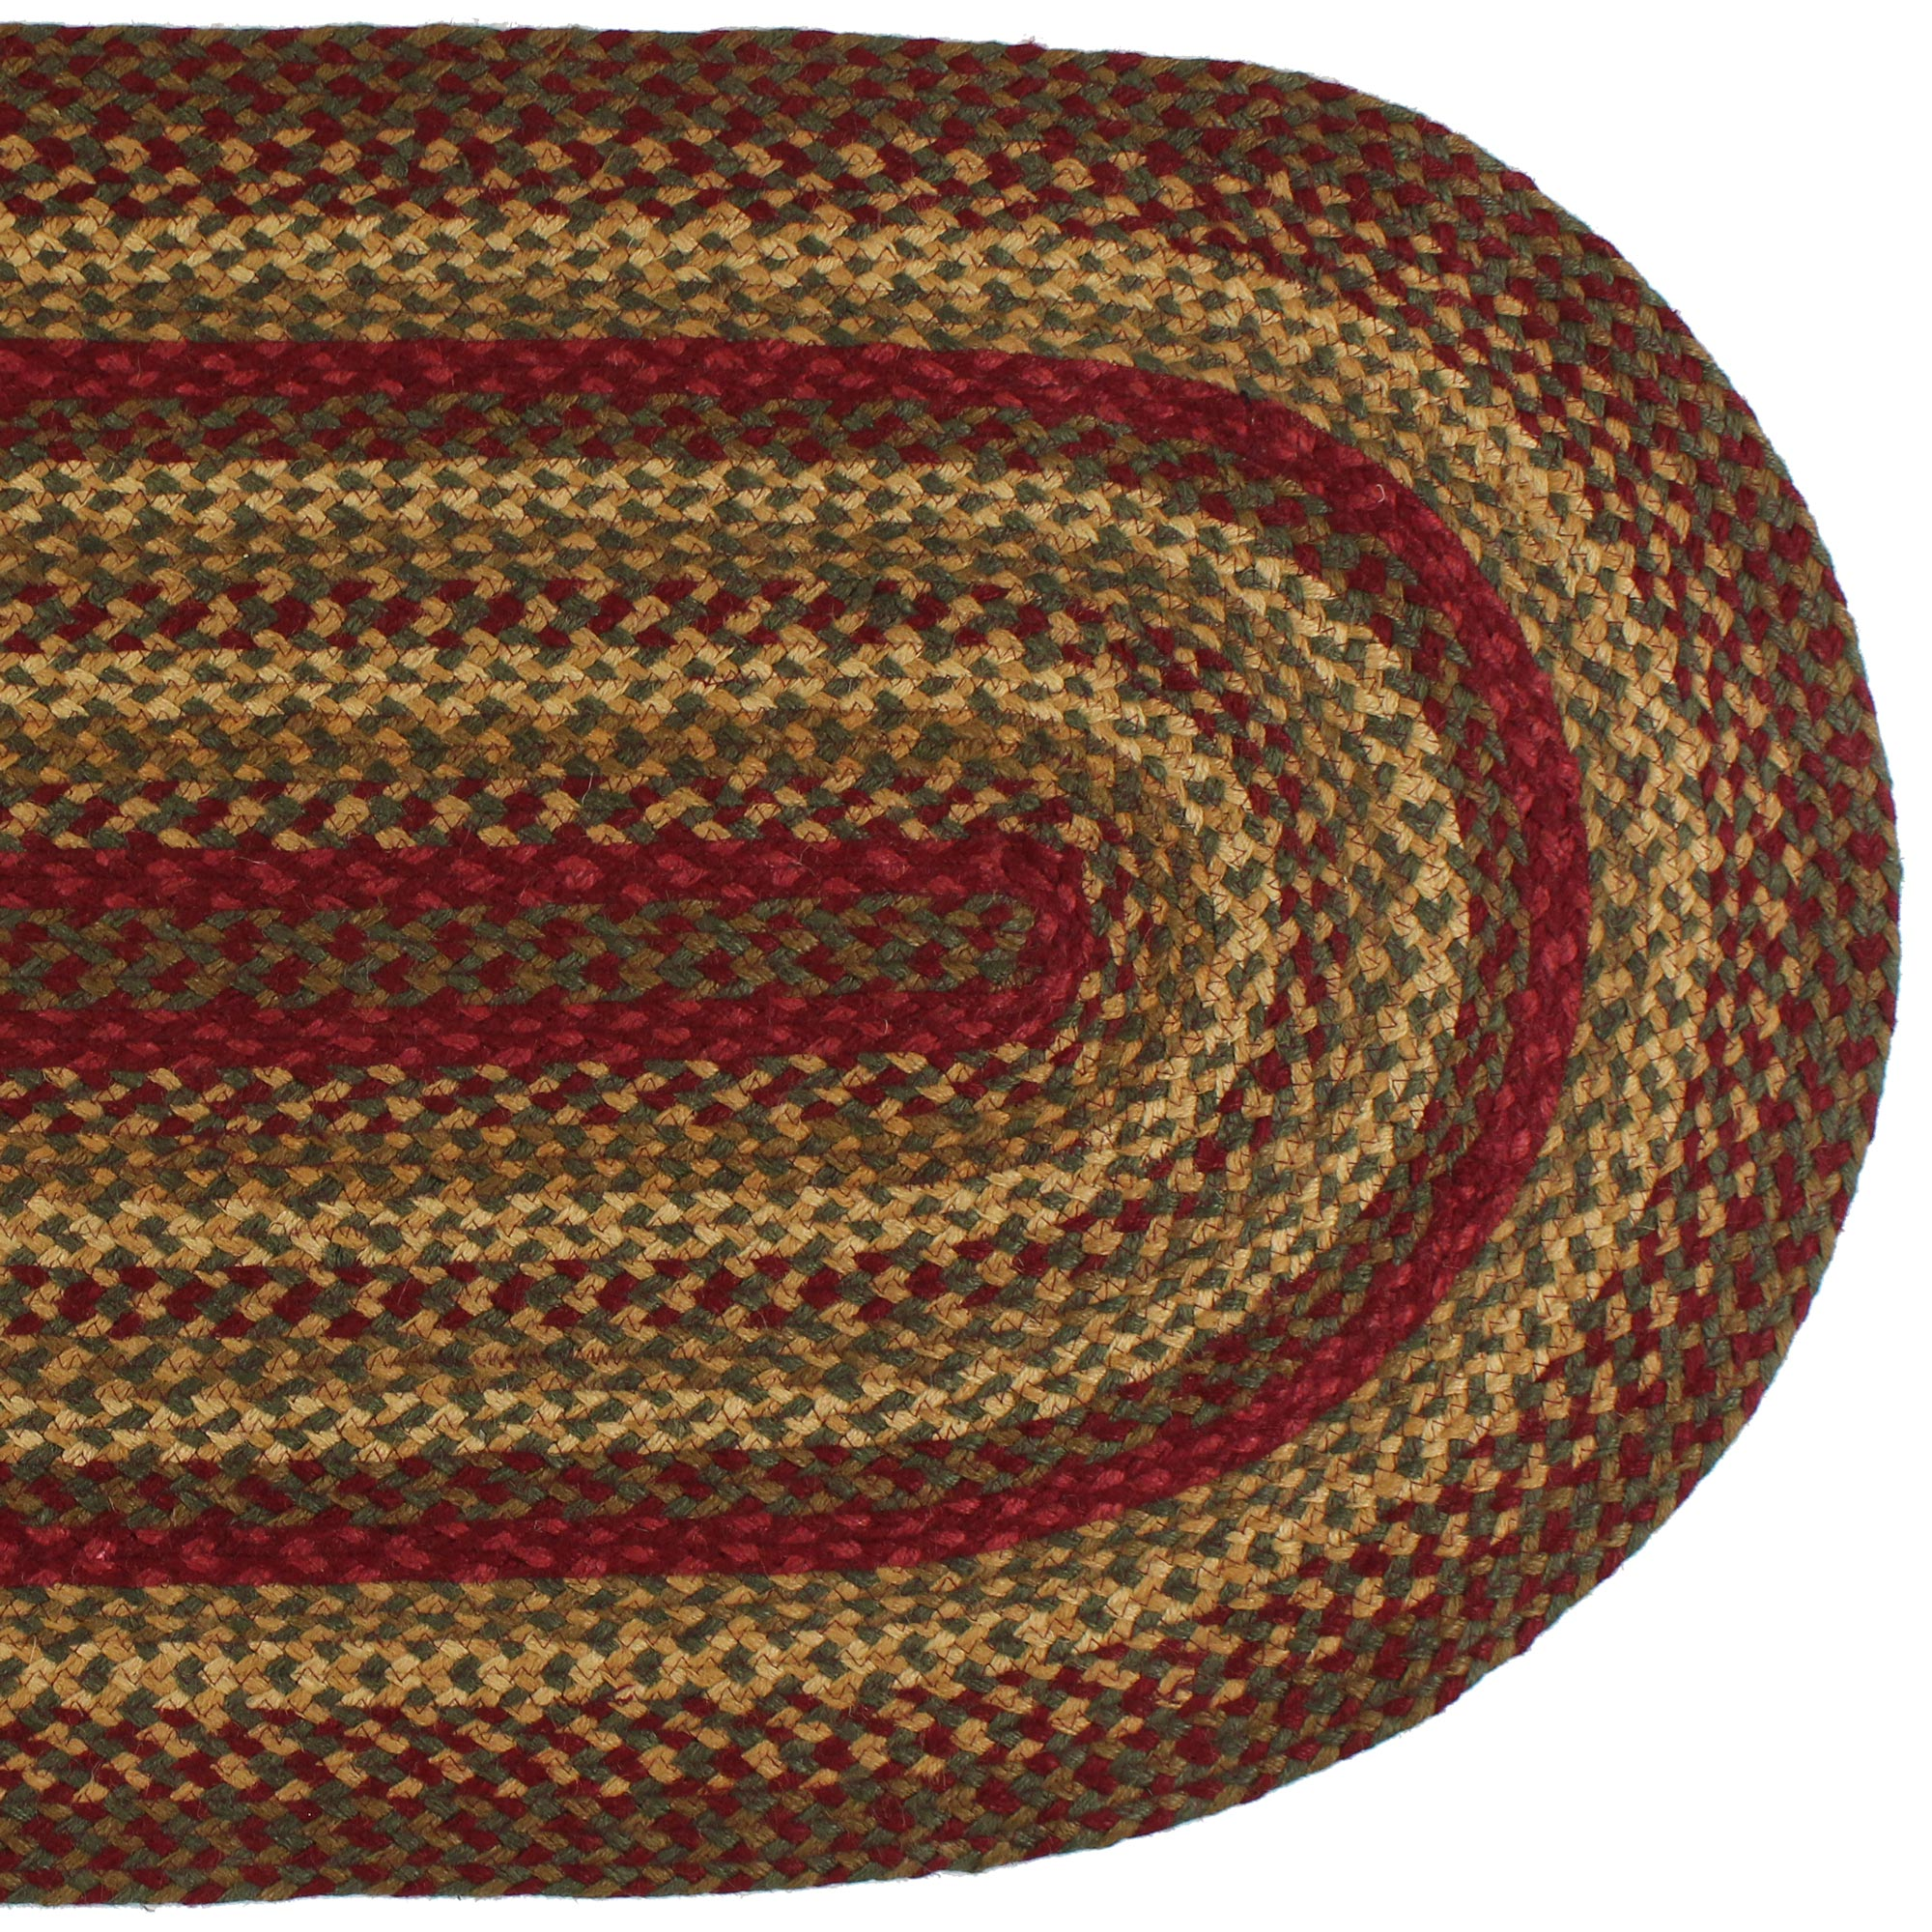 Brilliant braided rug for floorings and rugs ideas with round braided rugs and braided area rugs